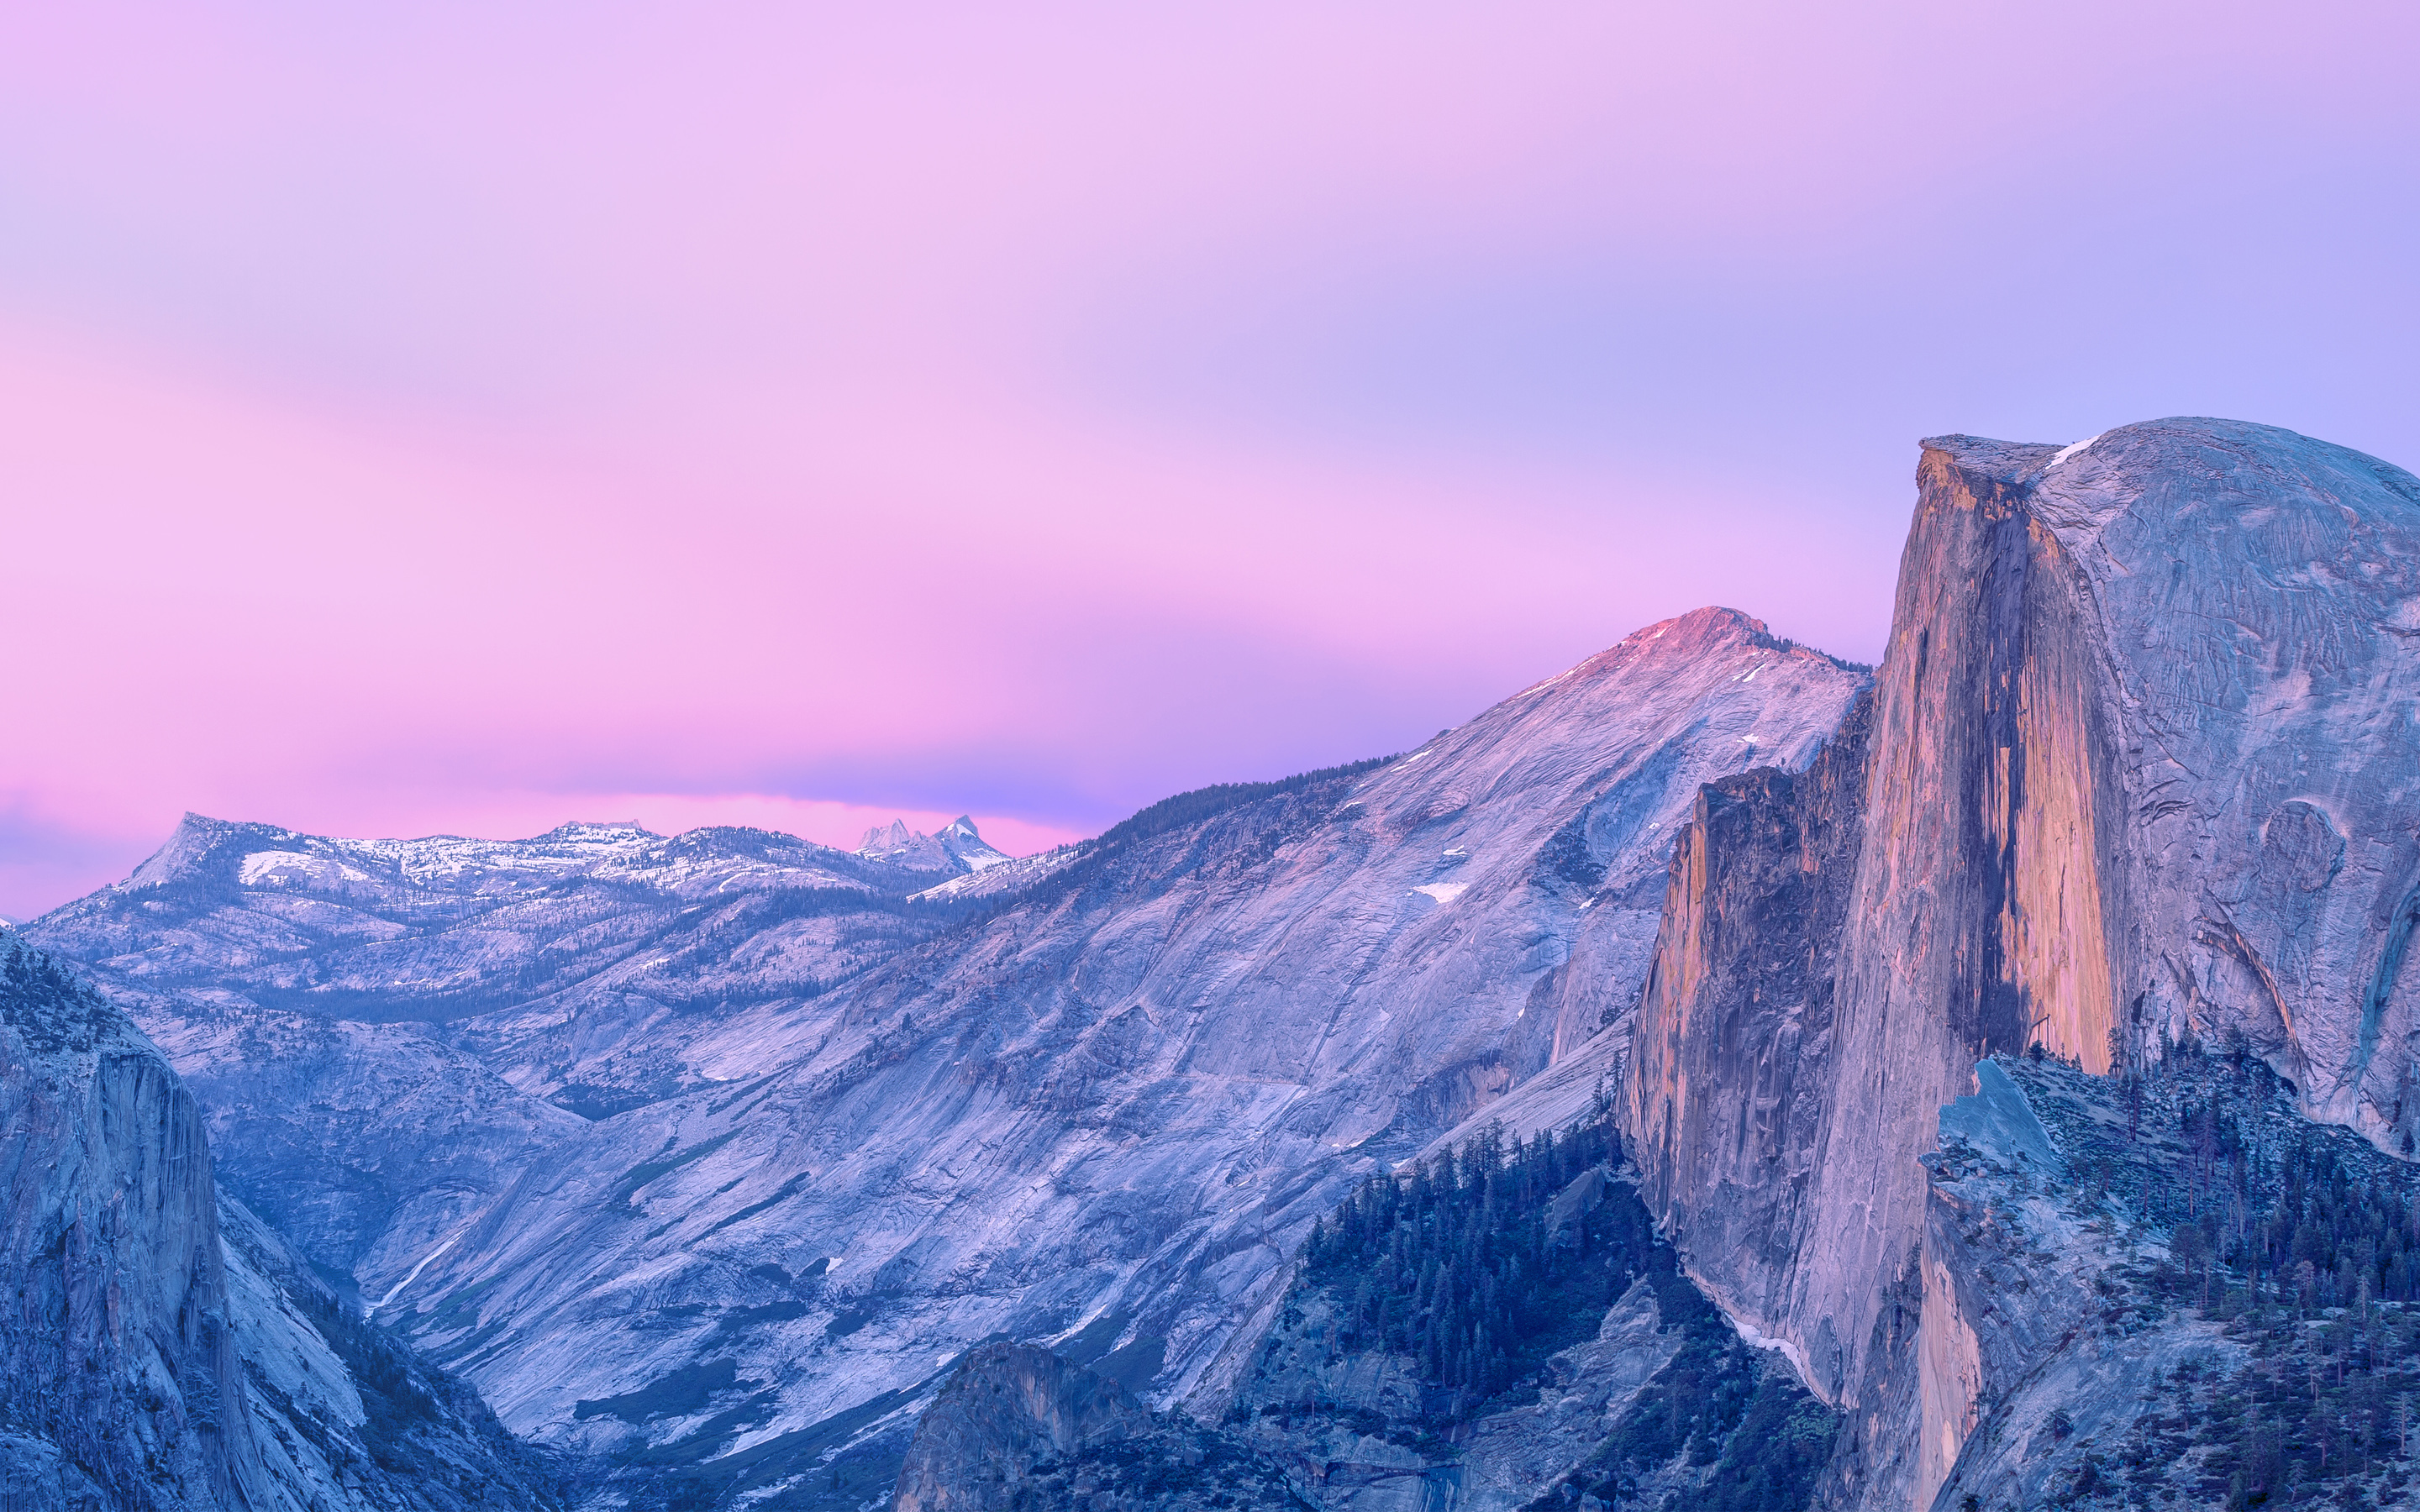 Yosemite National Park Wallpaper Posted By Ethan Anderson